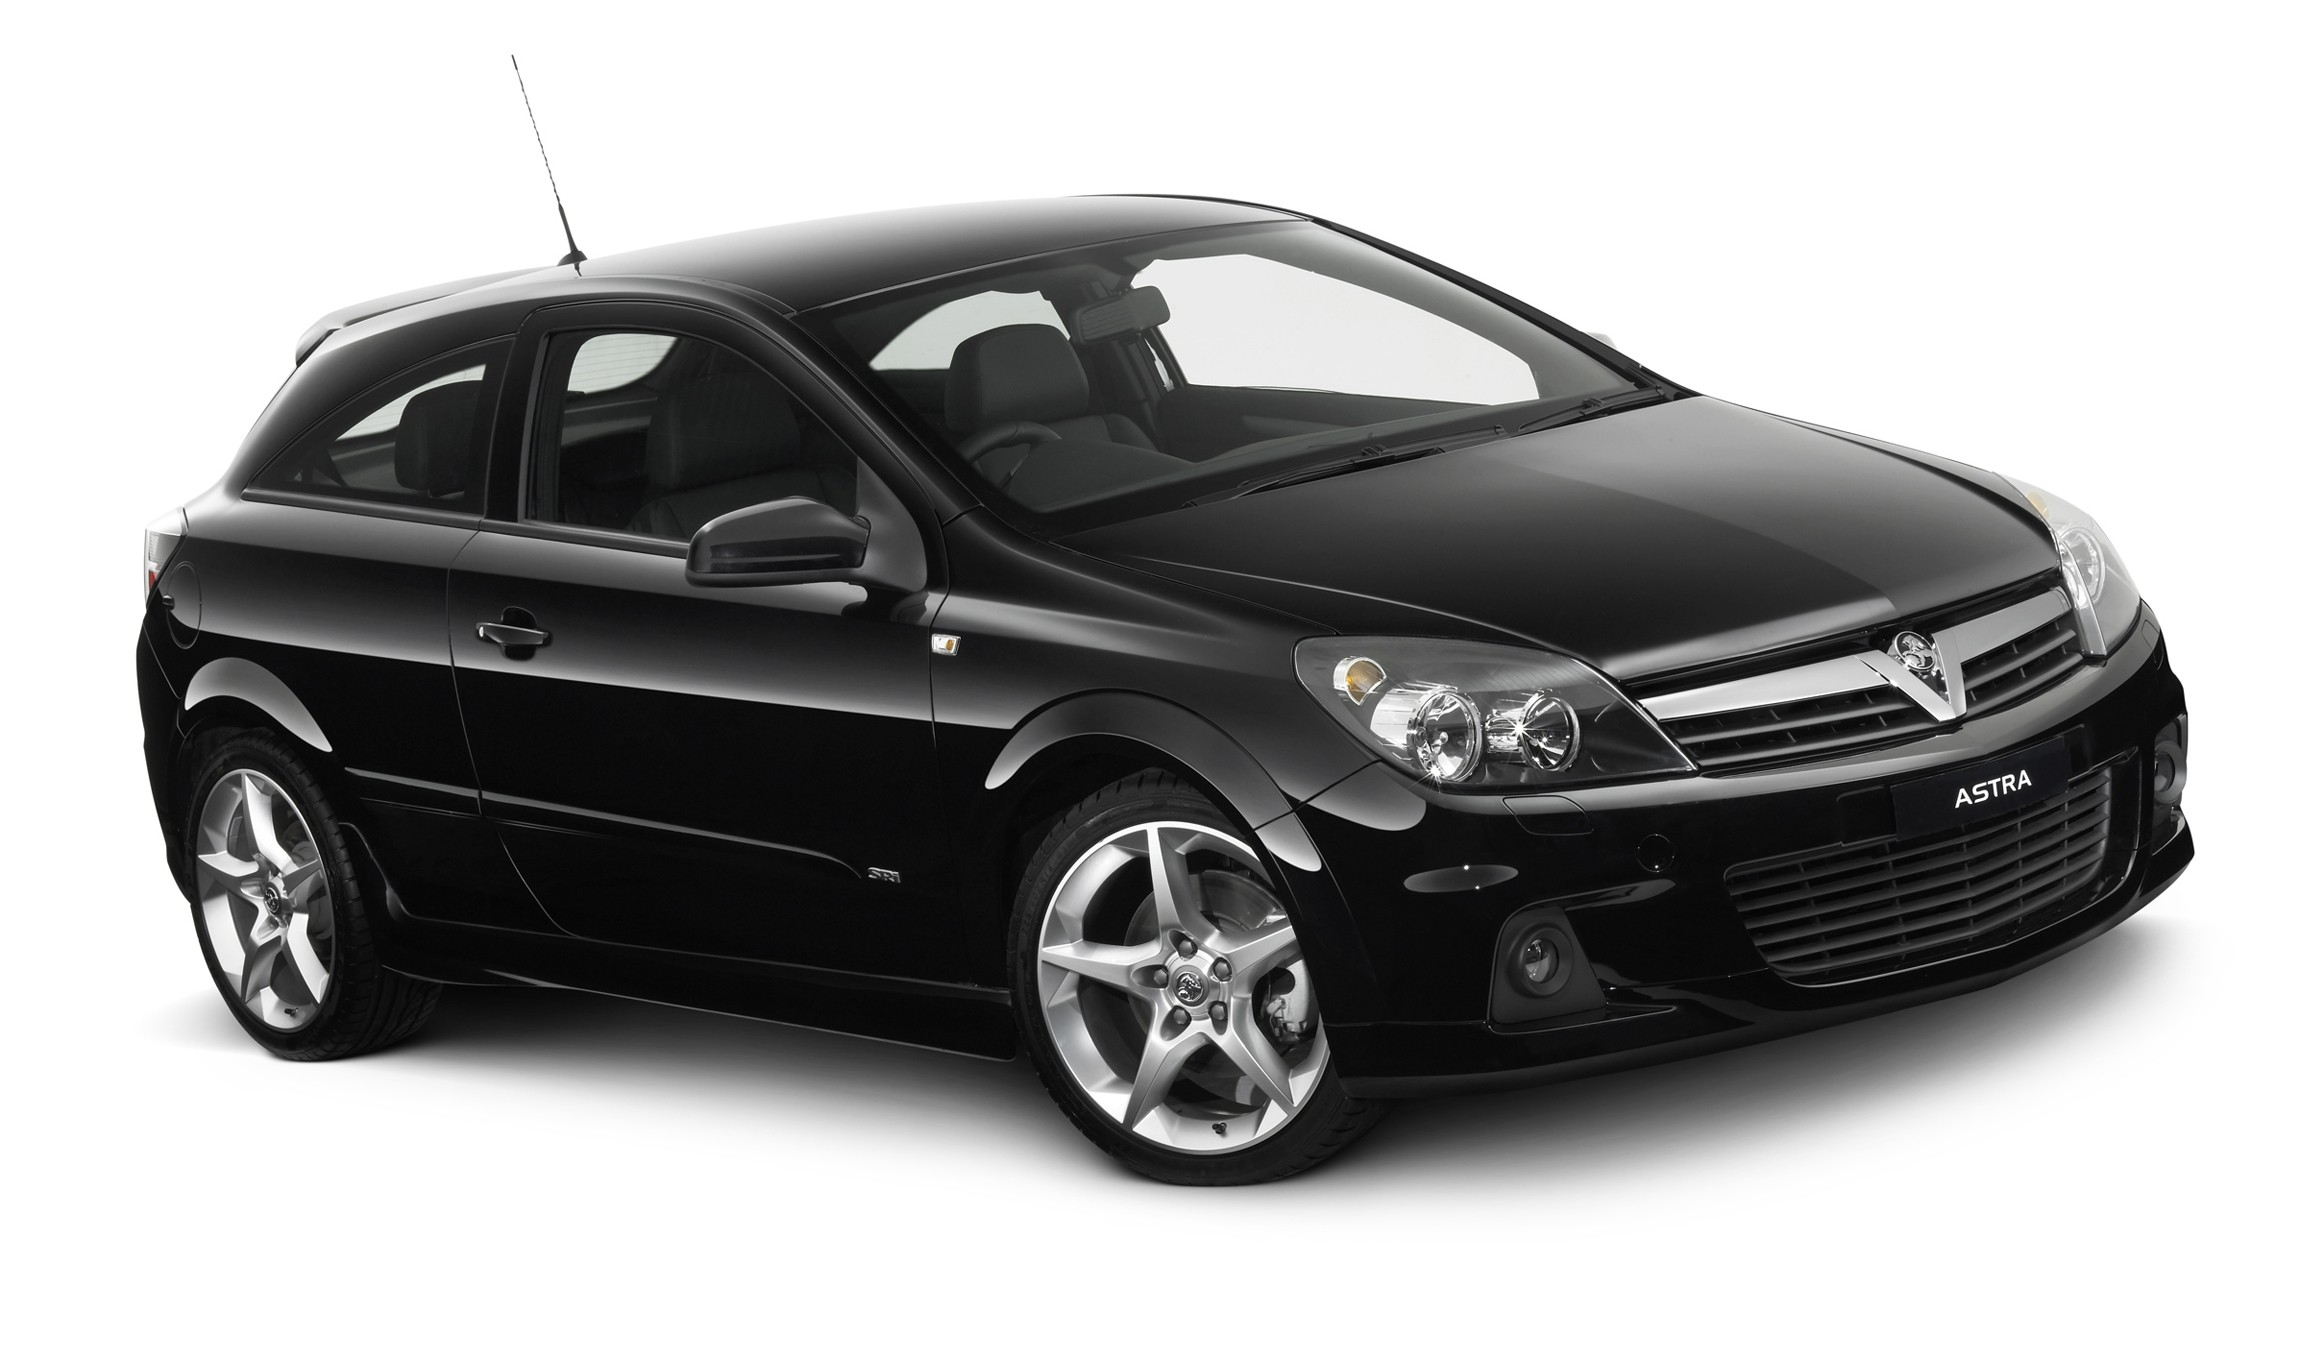 2005 holden astra wagon image collections hd cars wallpaper 2004 holden astra cd 5door choice image hd cars wallpaper 2005 holden astra sri turbo image vanachro Choice Image